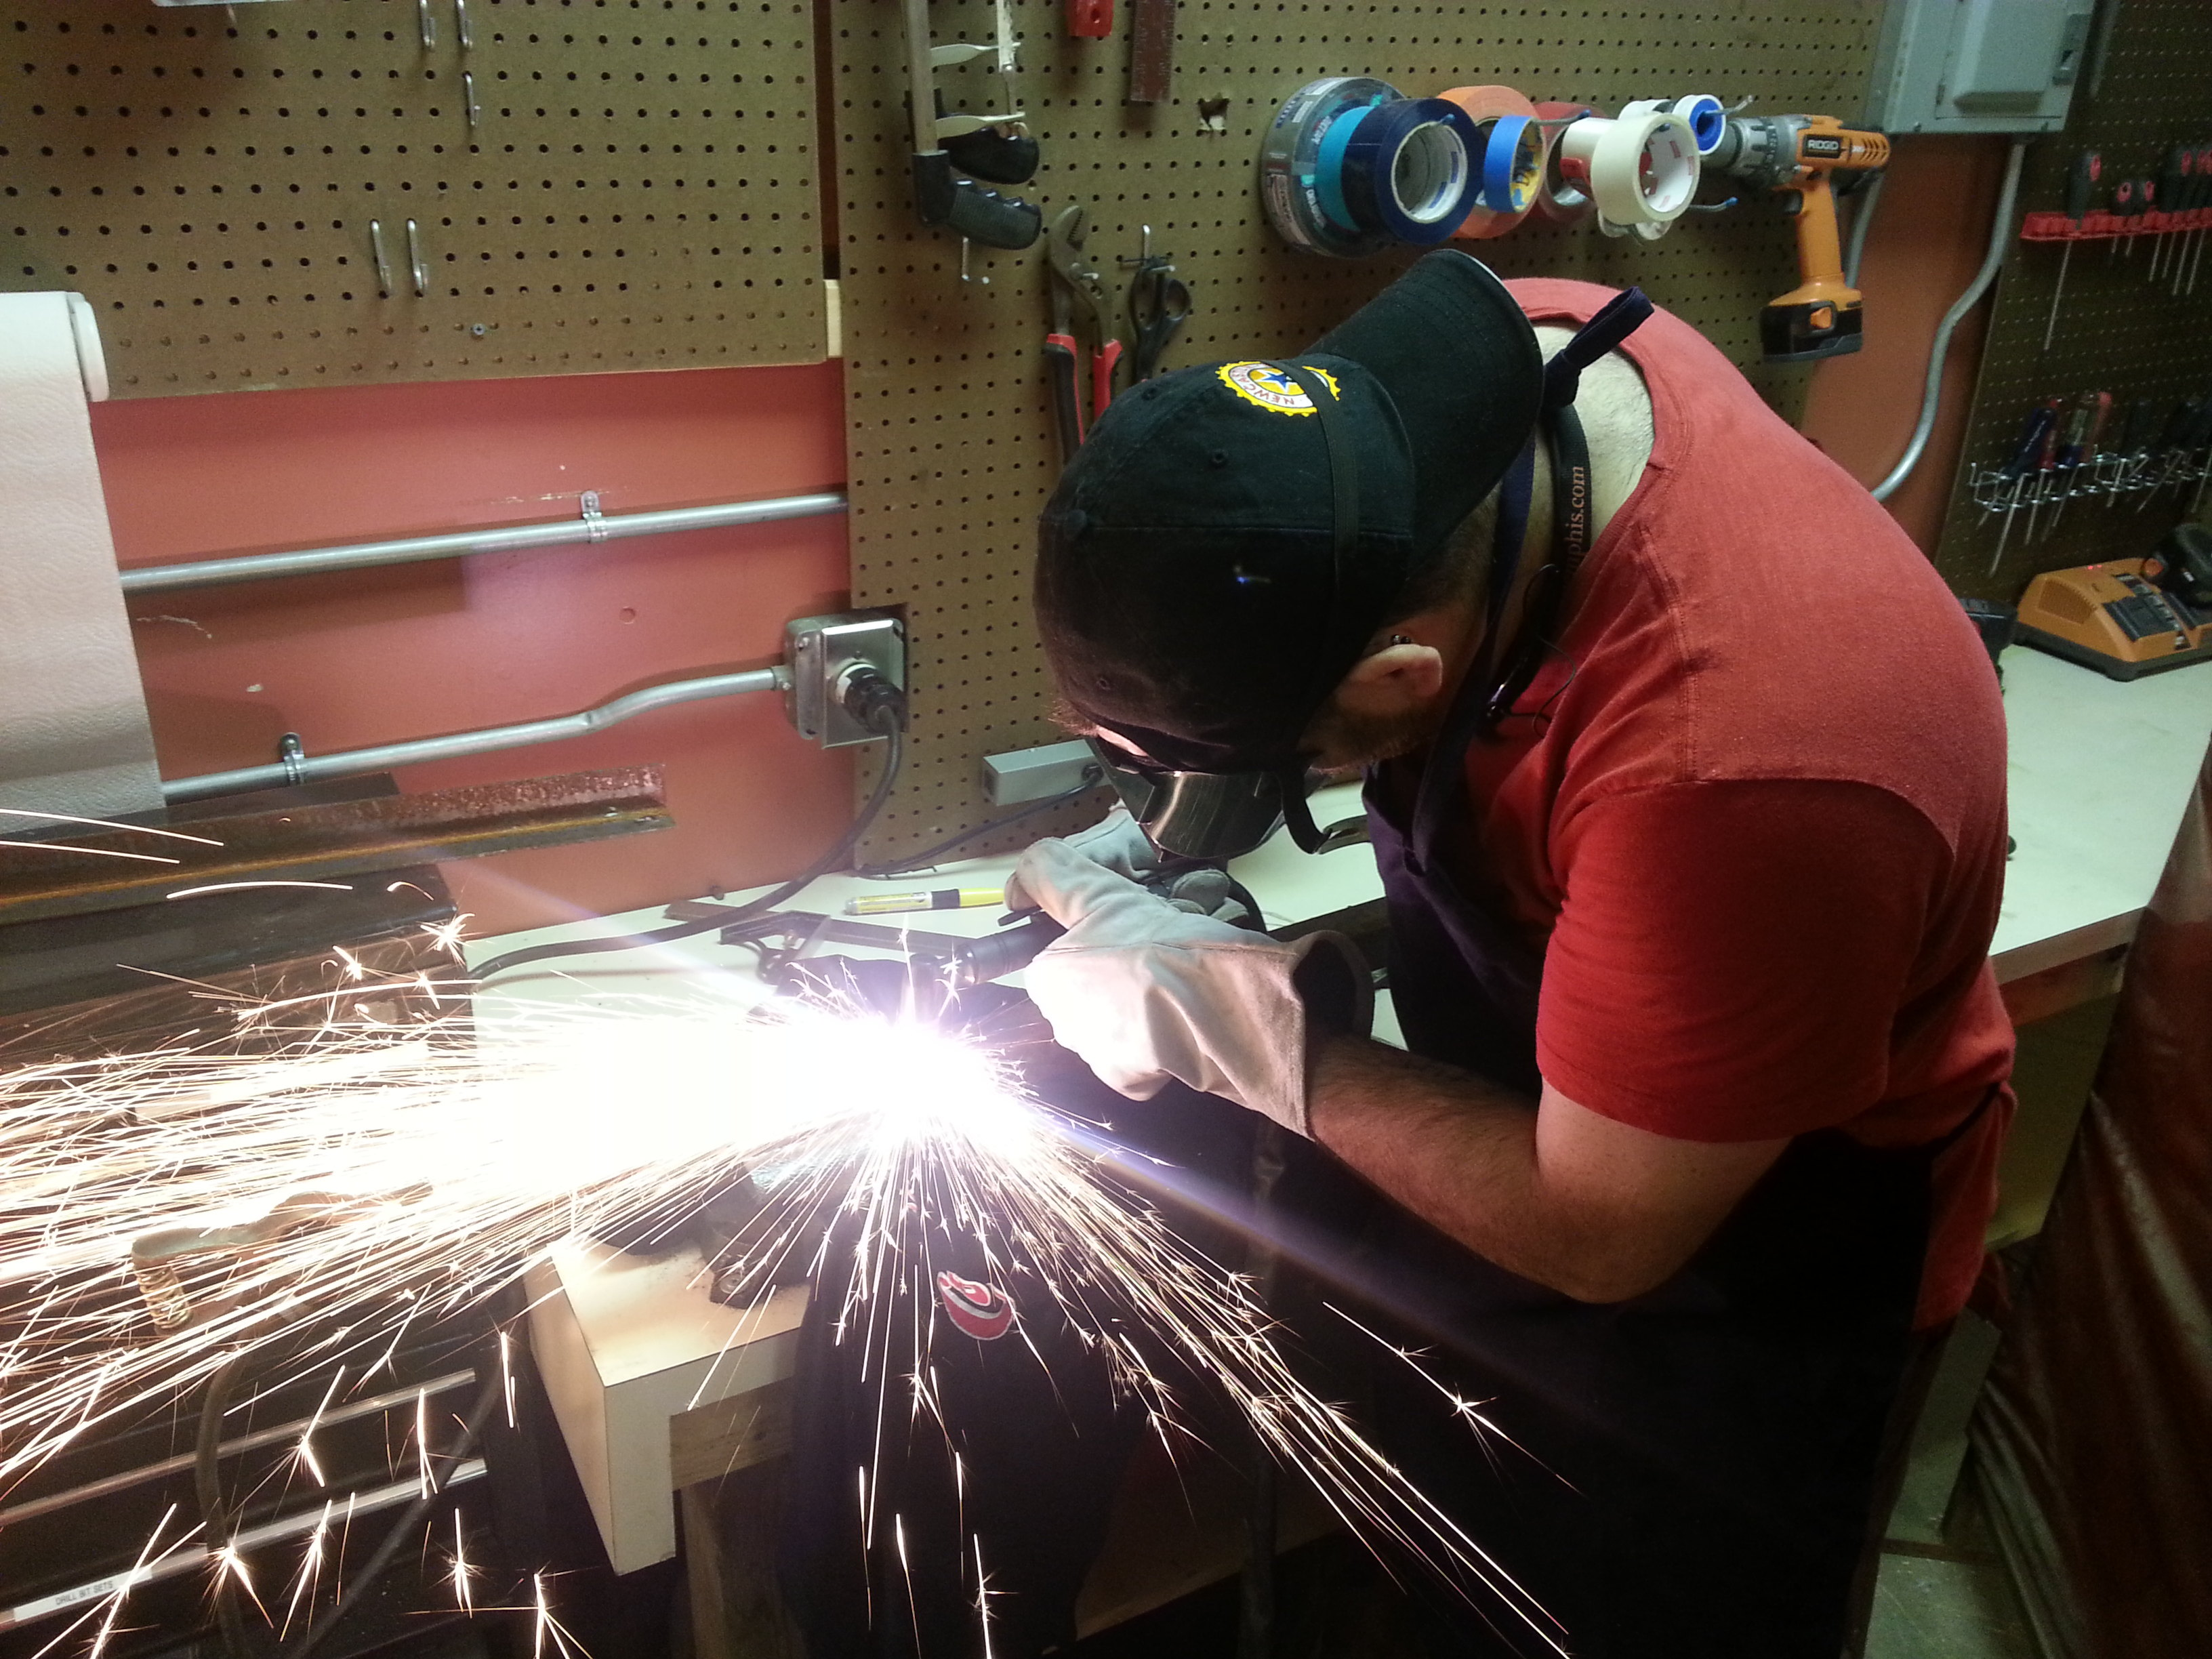 Claudio plasma cutting the barstock